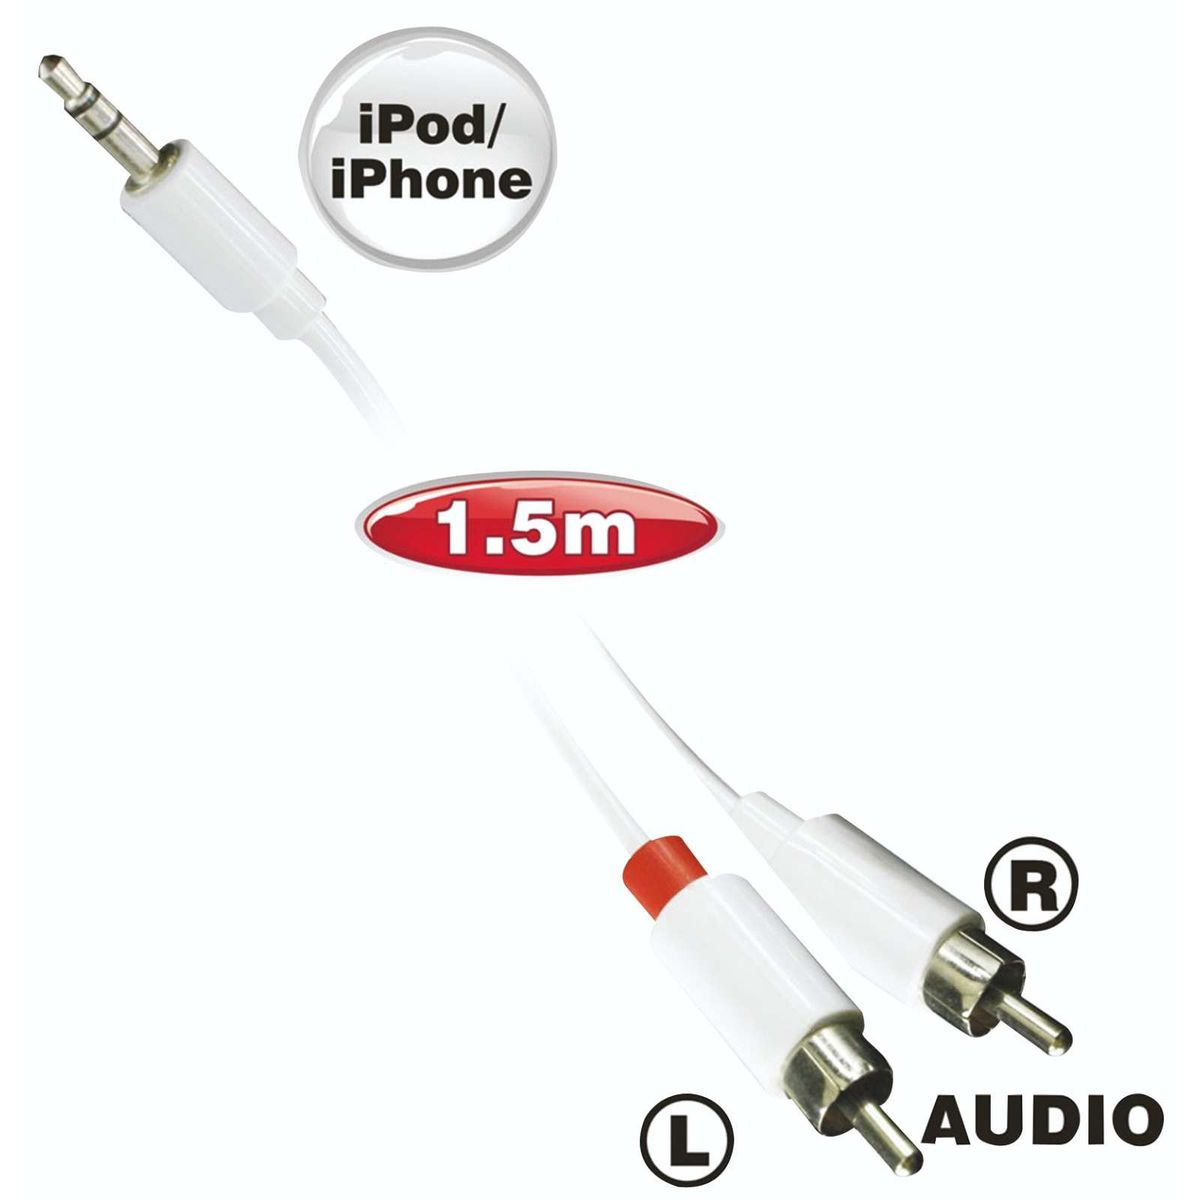 ellies ipod iphone stereo cable 2rca buy online in south africa. Black Bedroom Furniture Sets. Home Design Ideas